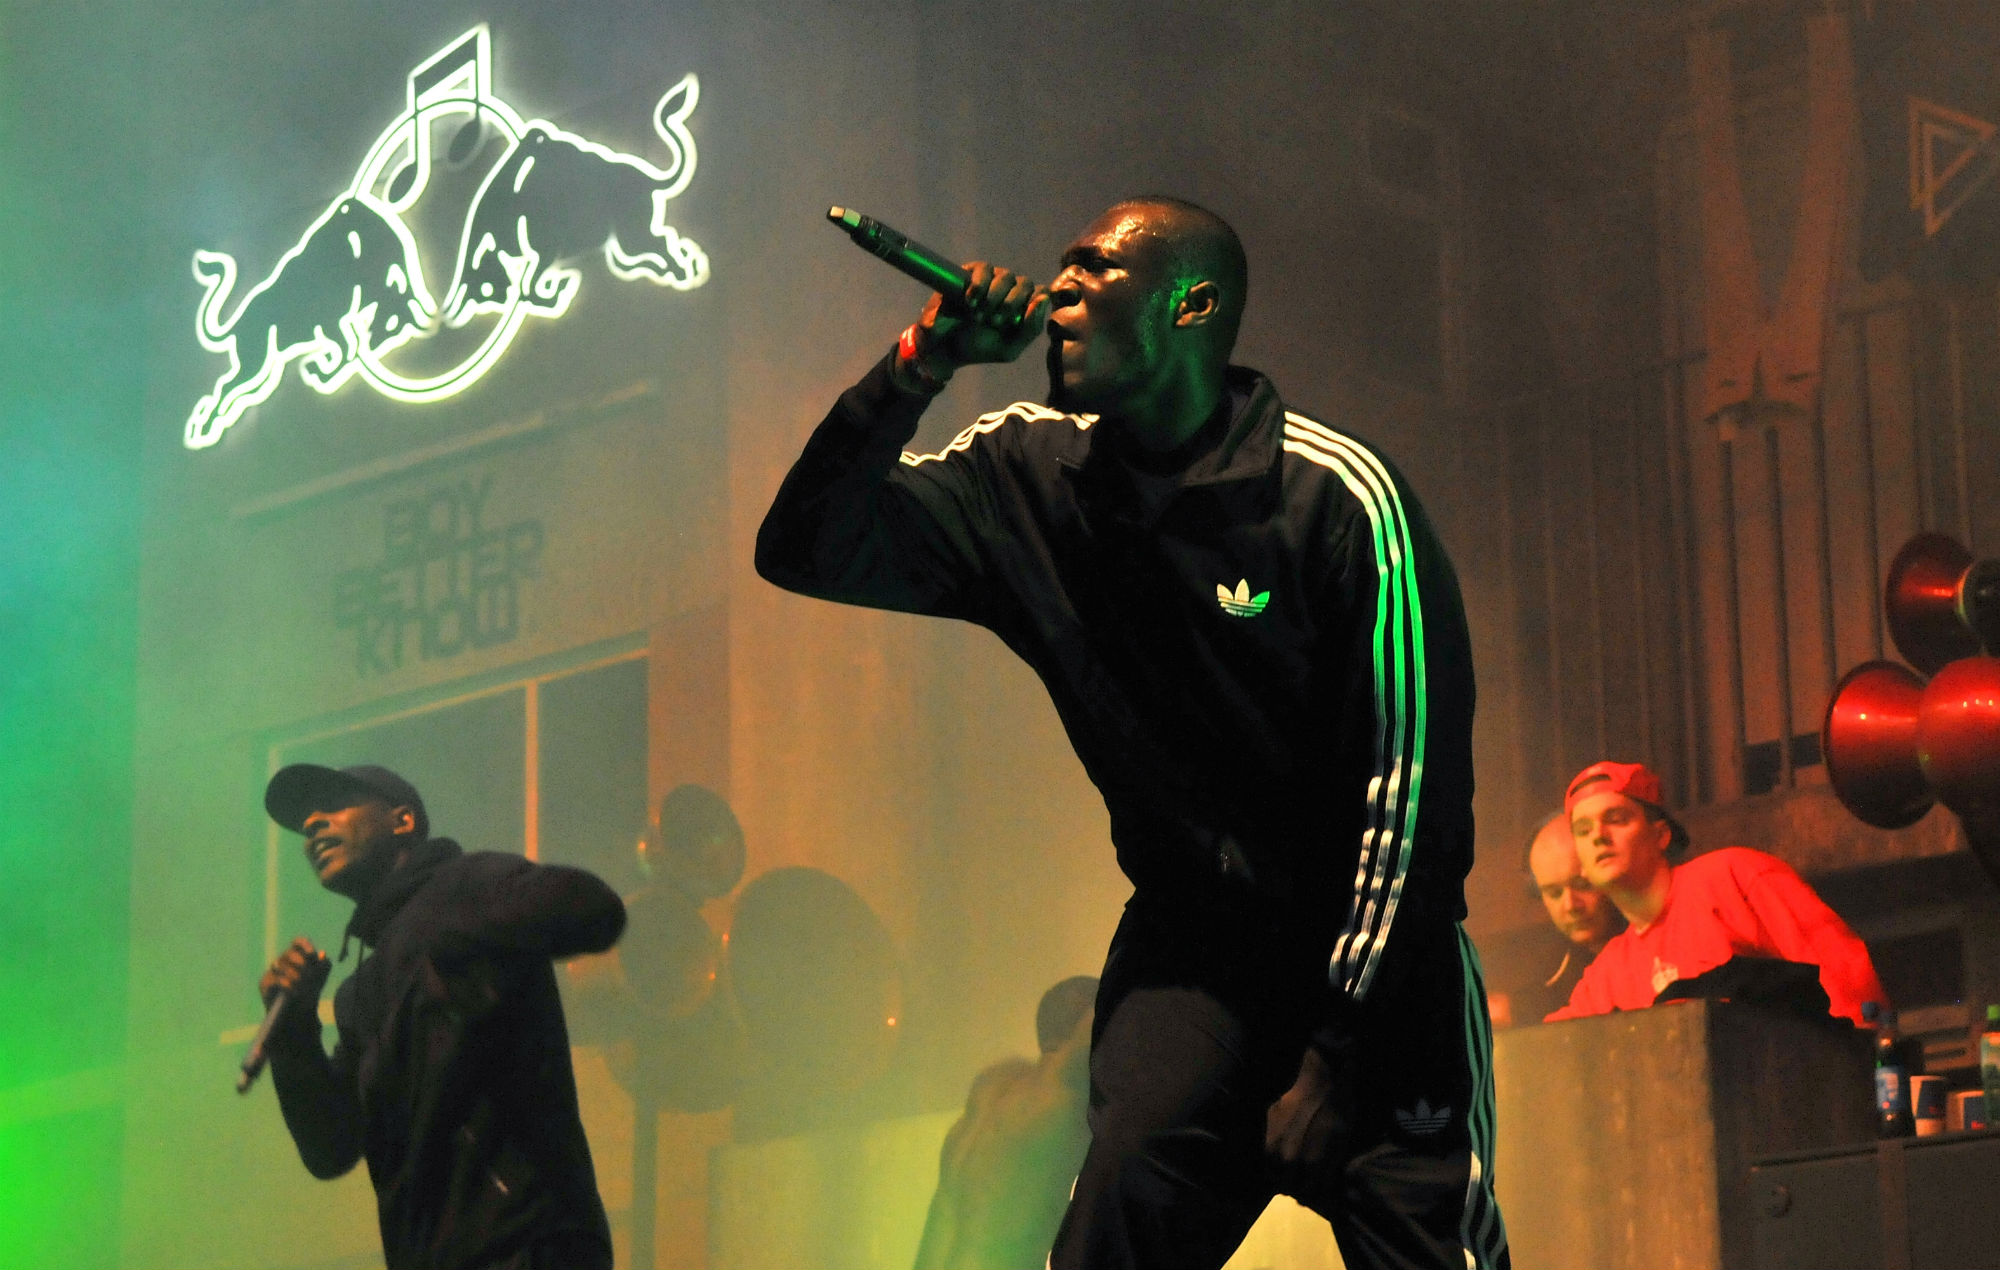 Stormzy and Boy Better Know perform on stage at Red Bull Culture Clash at Earls Court on October 30, 2014 in London, England